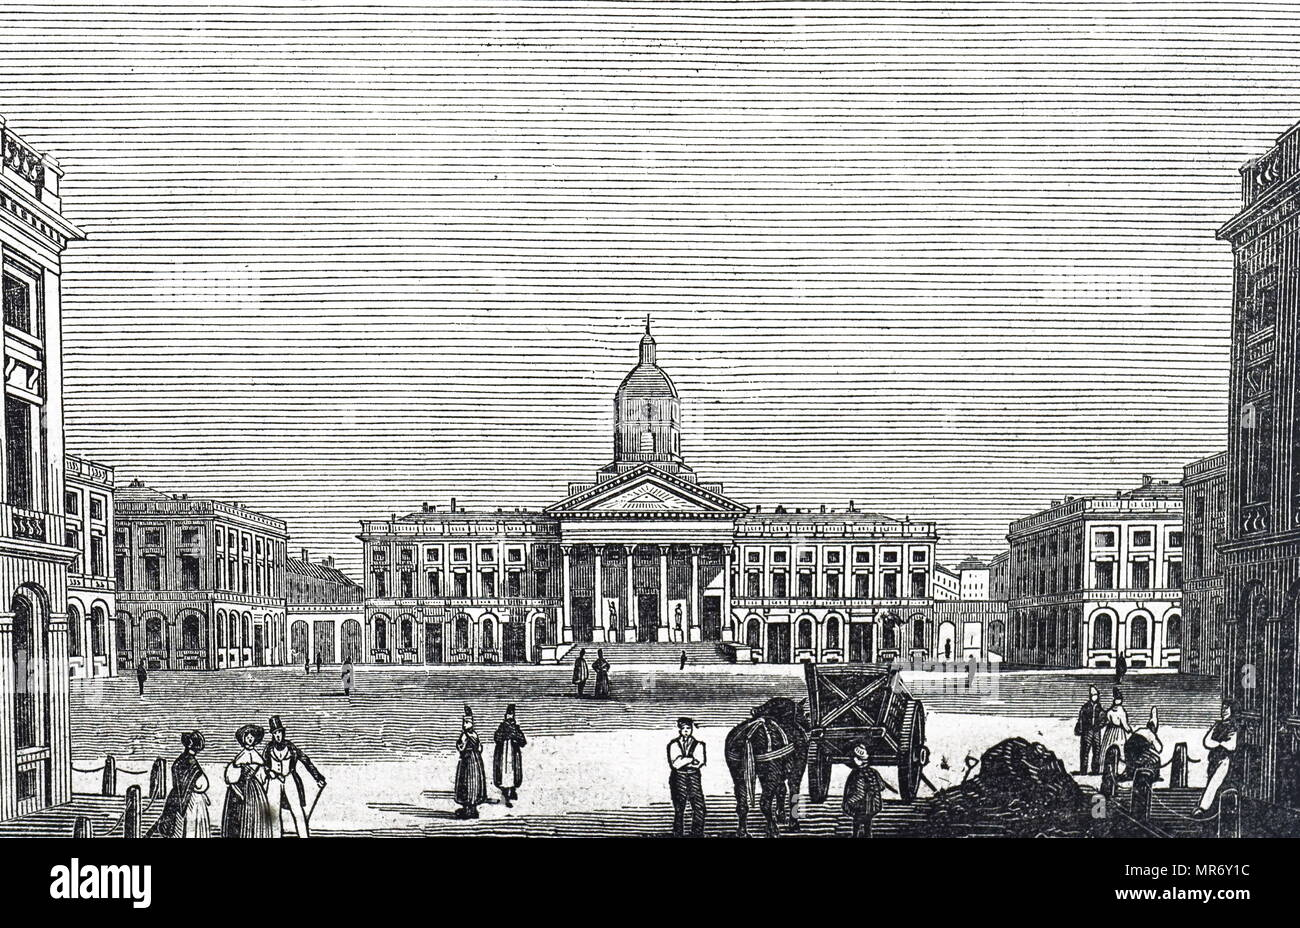 Engraving depicting the Royal Palace of Brussels,  the official palace of the King and Queen of the Belgians in the centre of the nation's capital Brussels. Dated 19th century Stock Photo